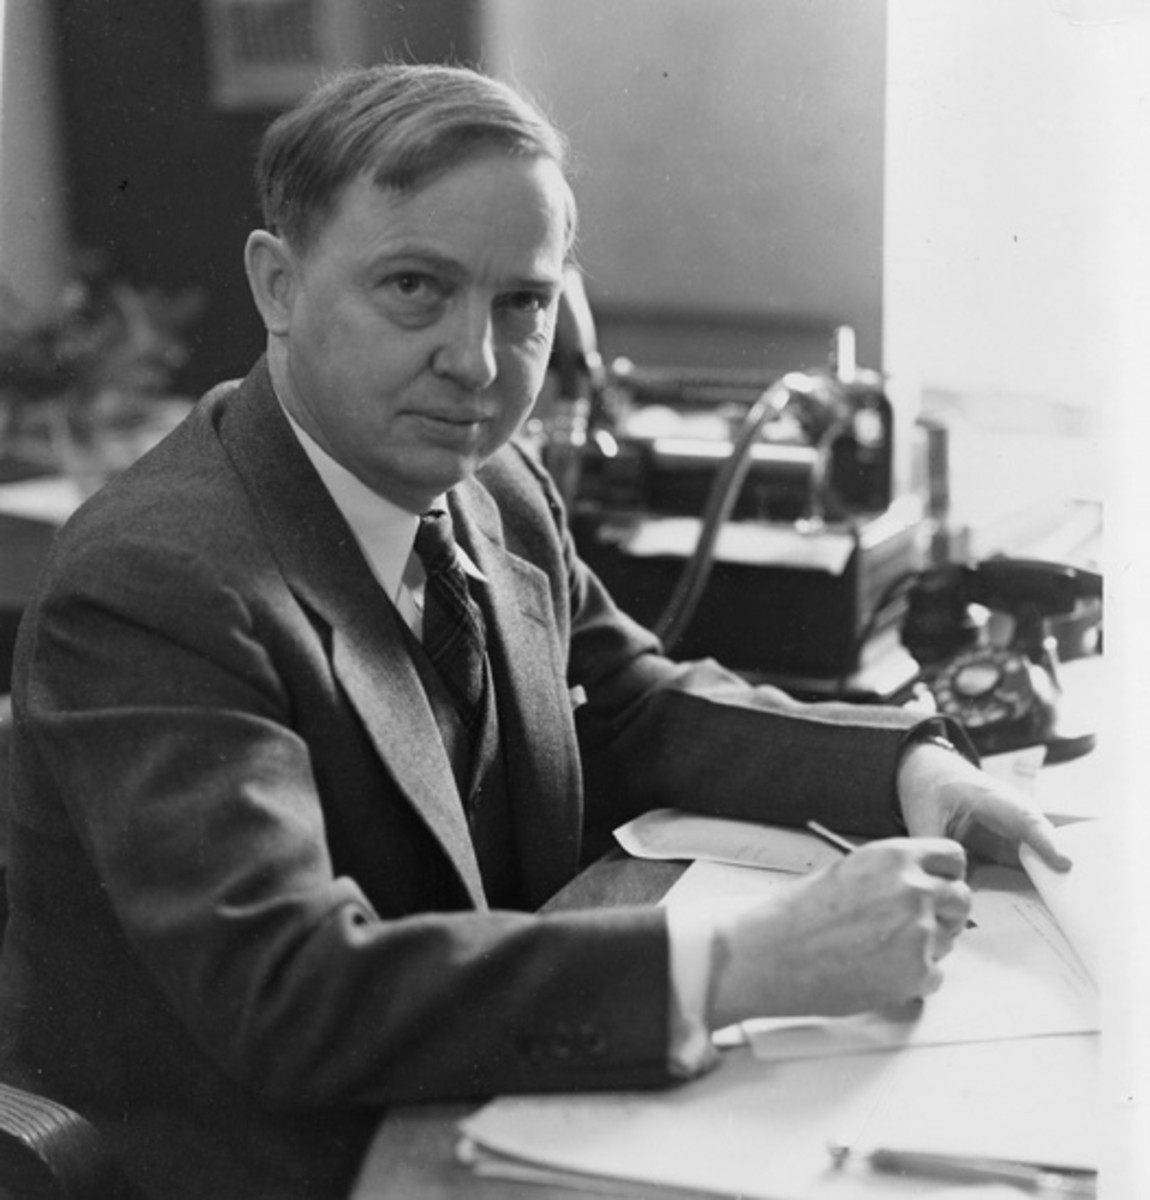 Harlow Shapley: An American Astronomer Who Measured the Galaxy